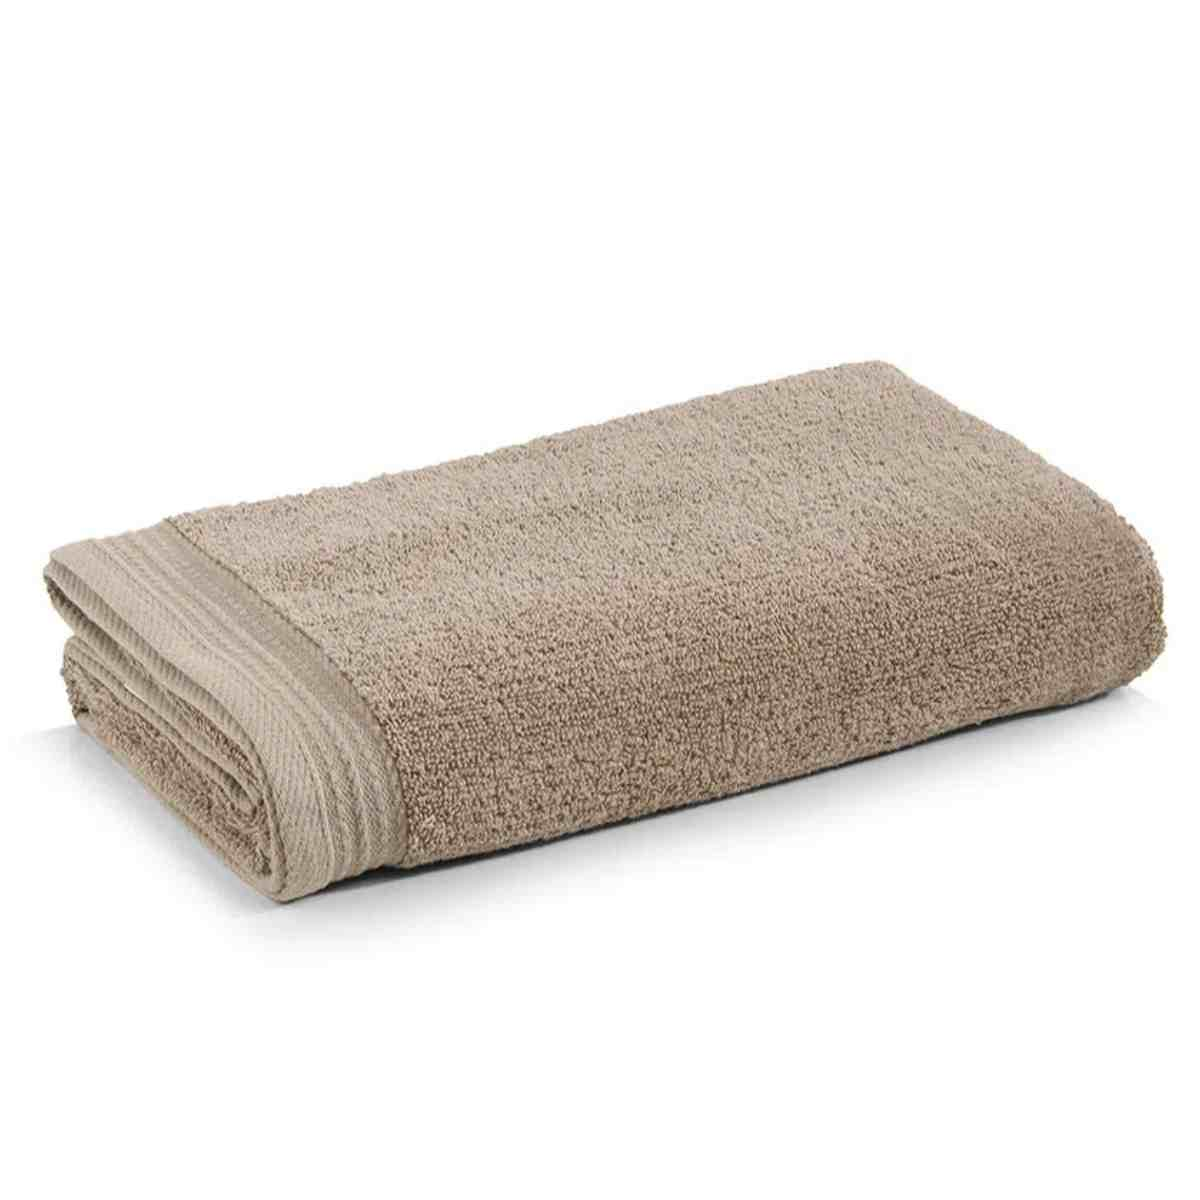 Toalha banho imperial 70x140 Taupe